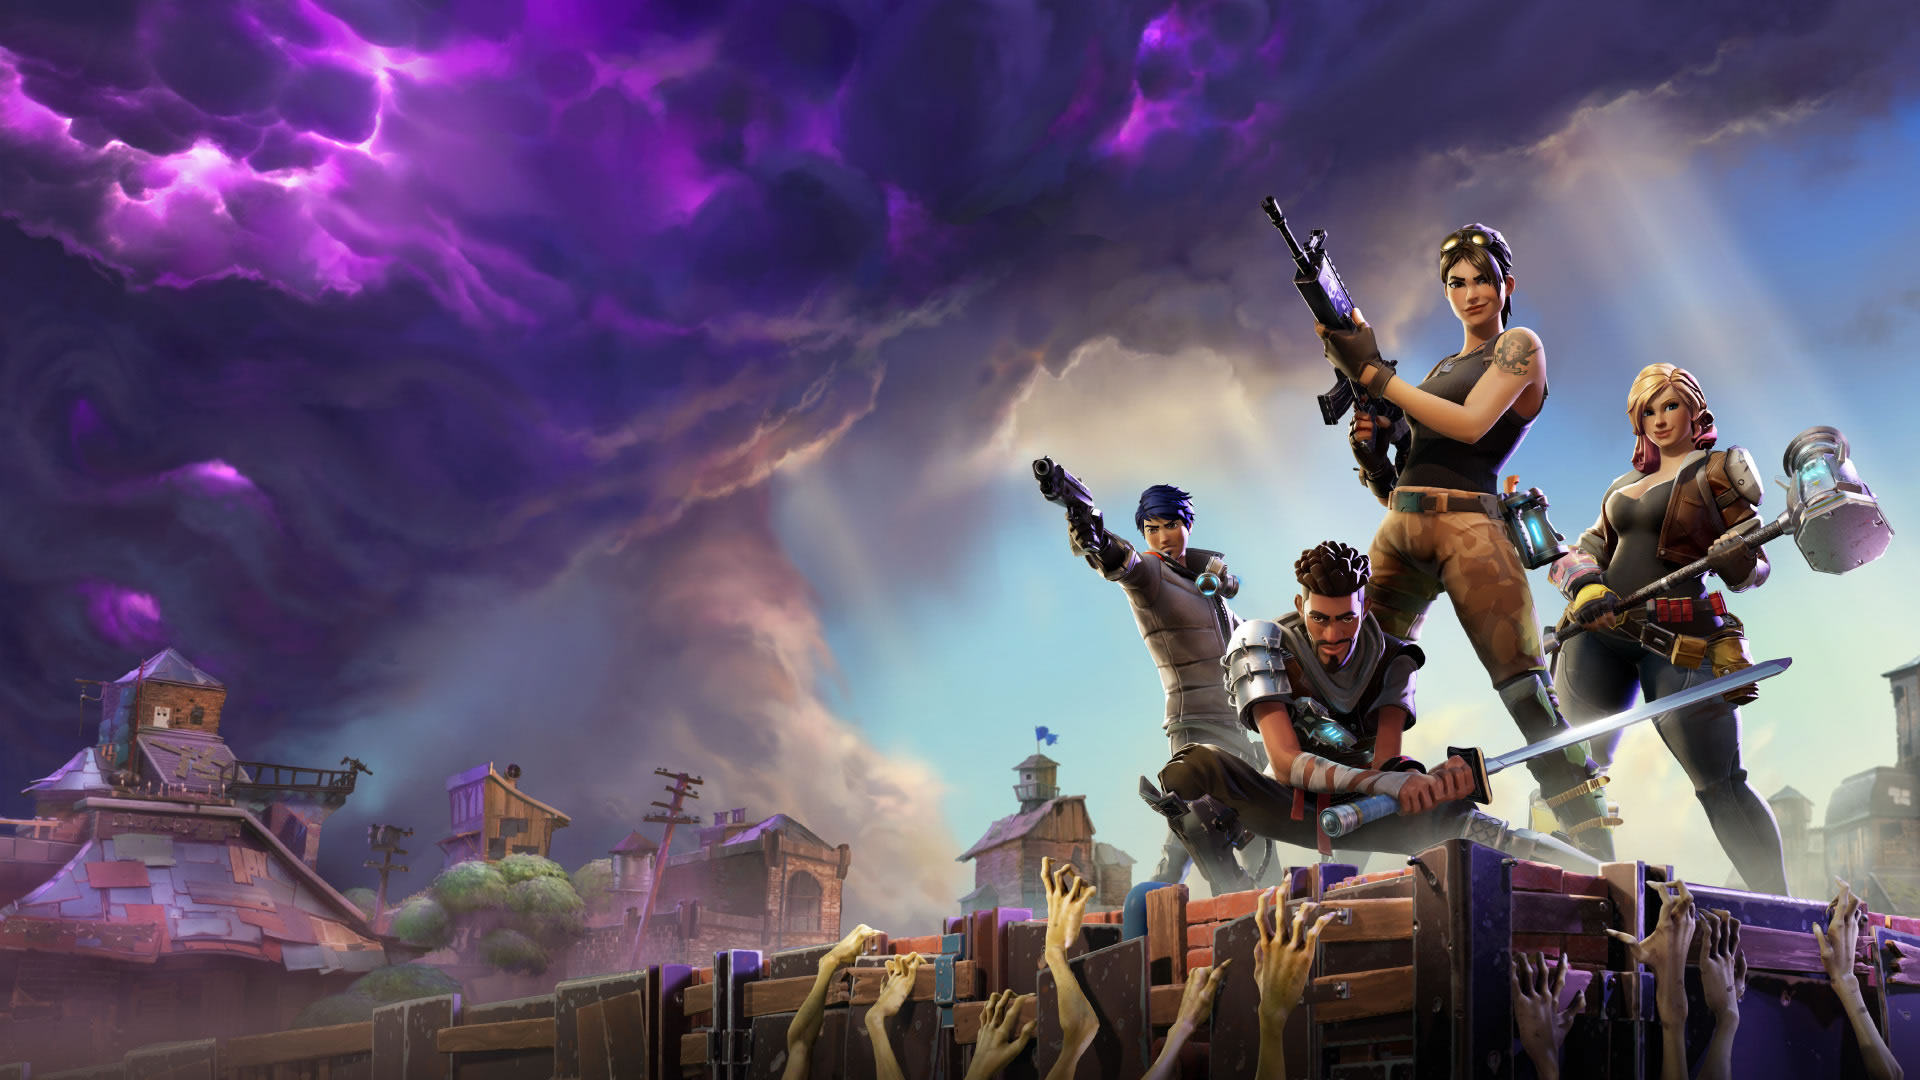 download wallpaper: Save the world wallpaper